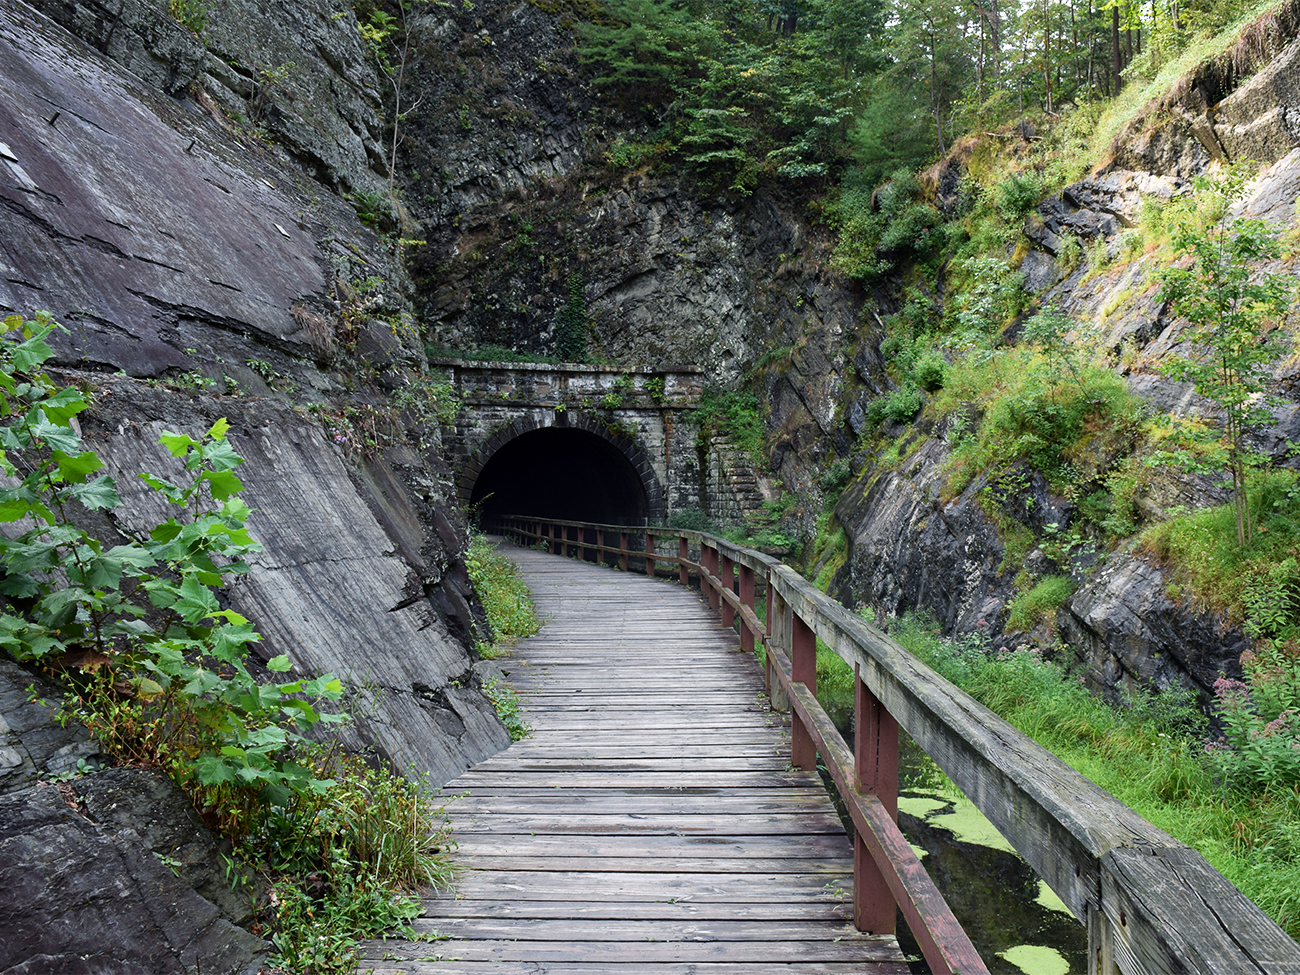 View of the southern entrance and boardwalk leading to Paw Paw Tunnel